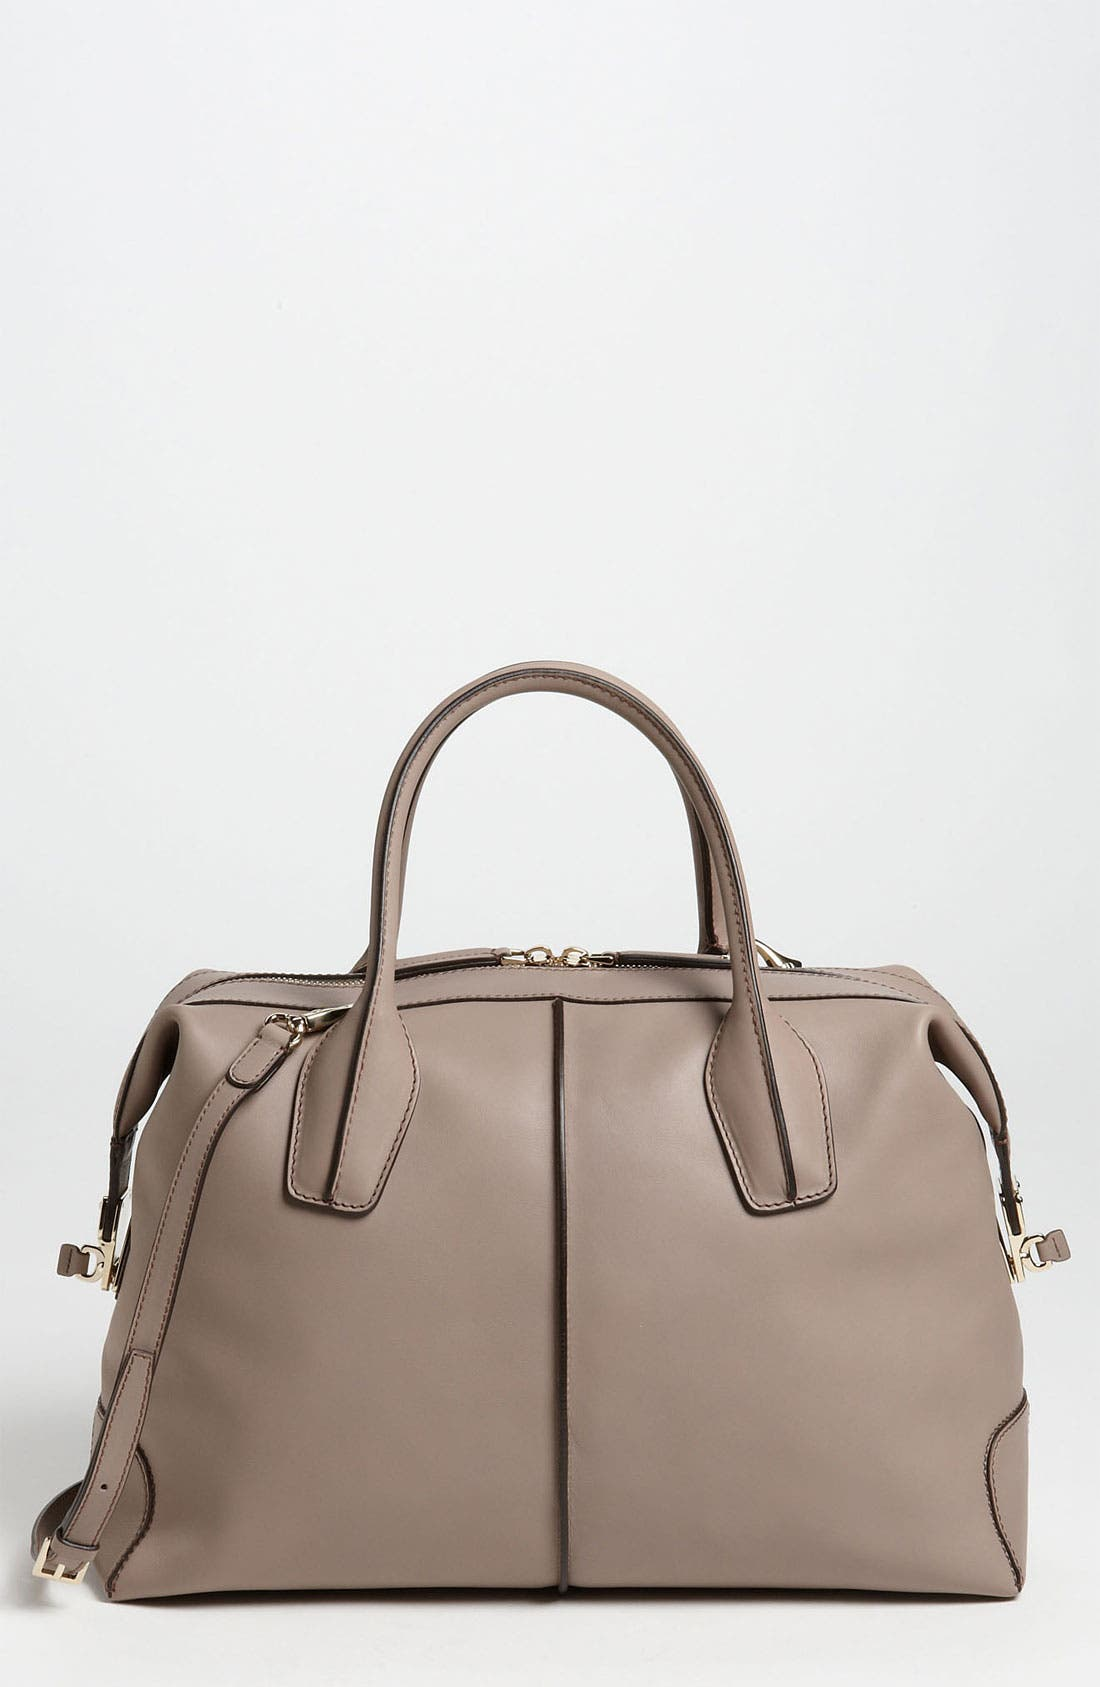 Main Image - Tod's 'Small D-Styling' Leather Satchel